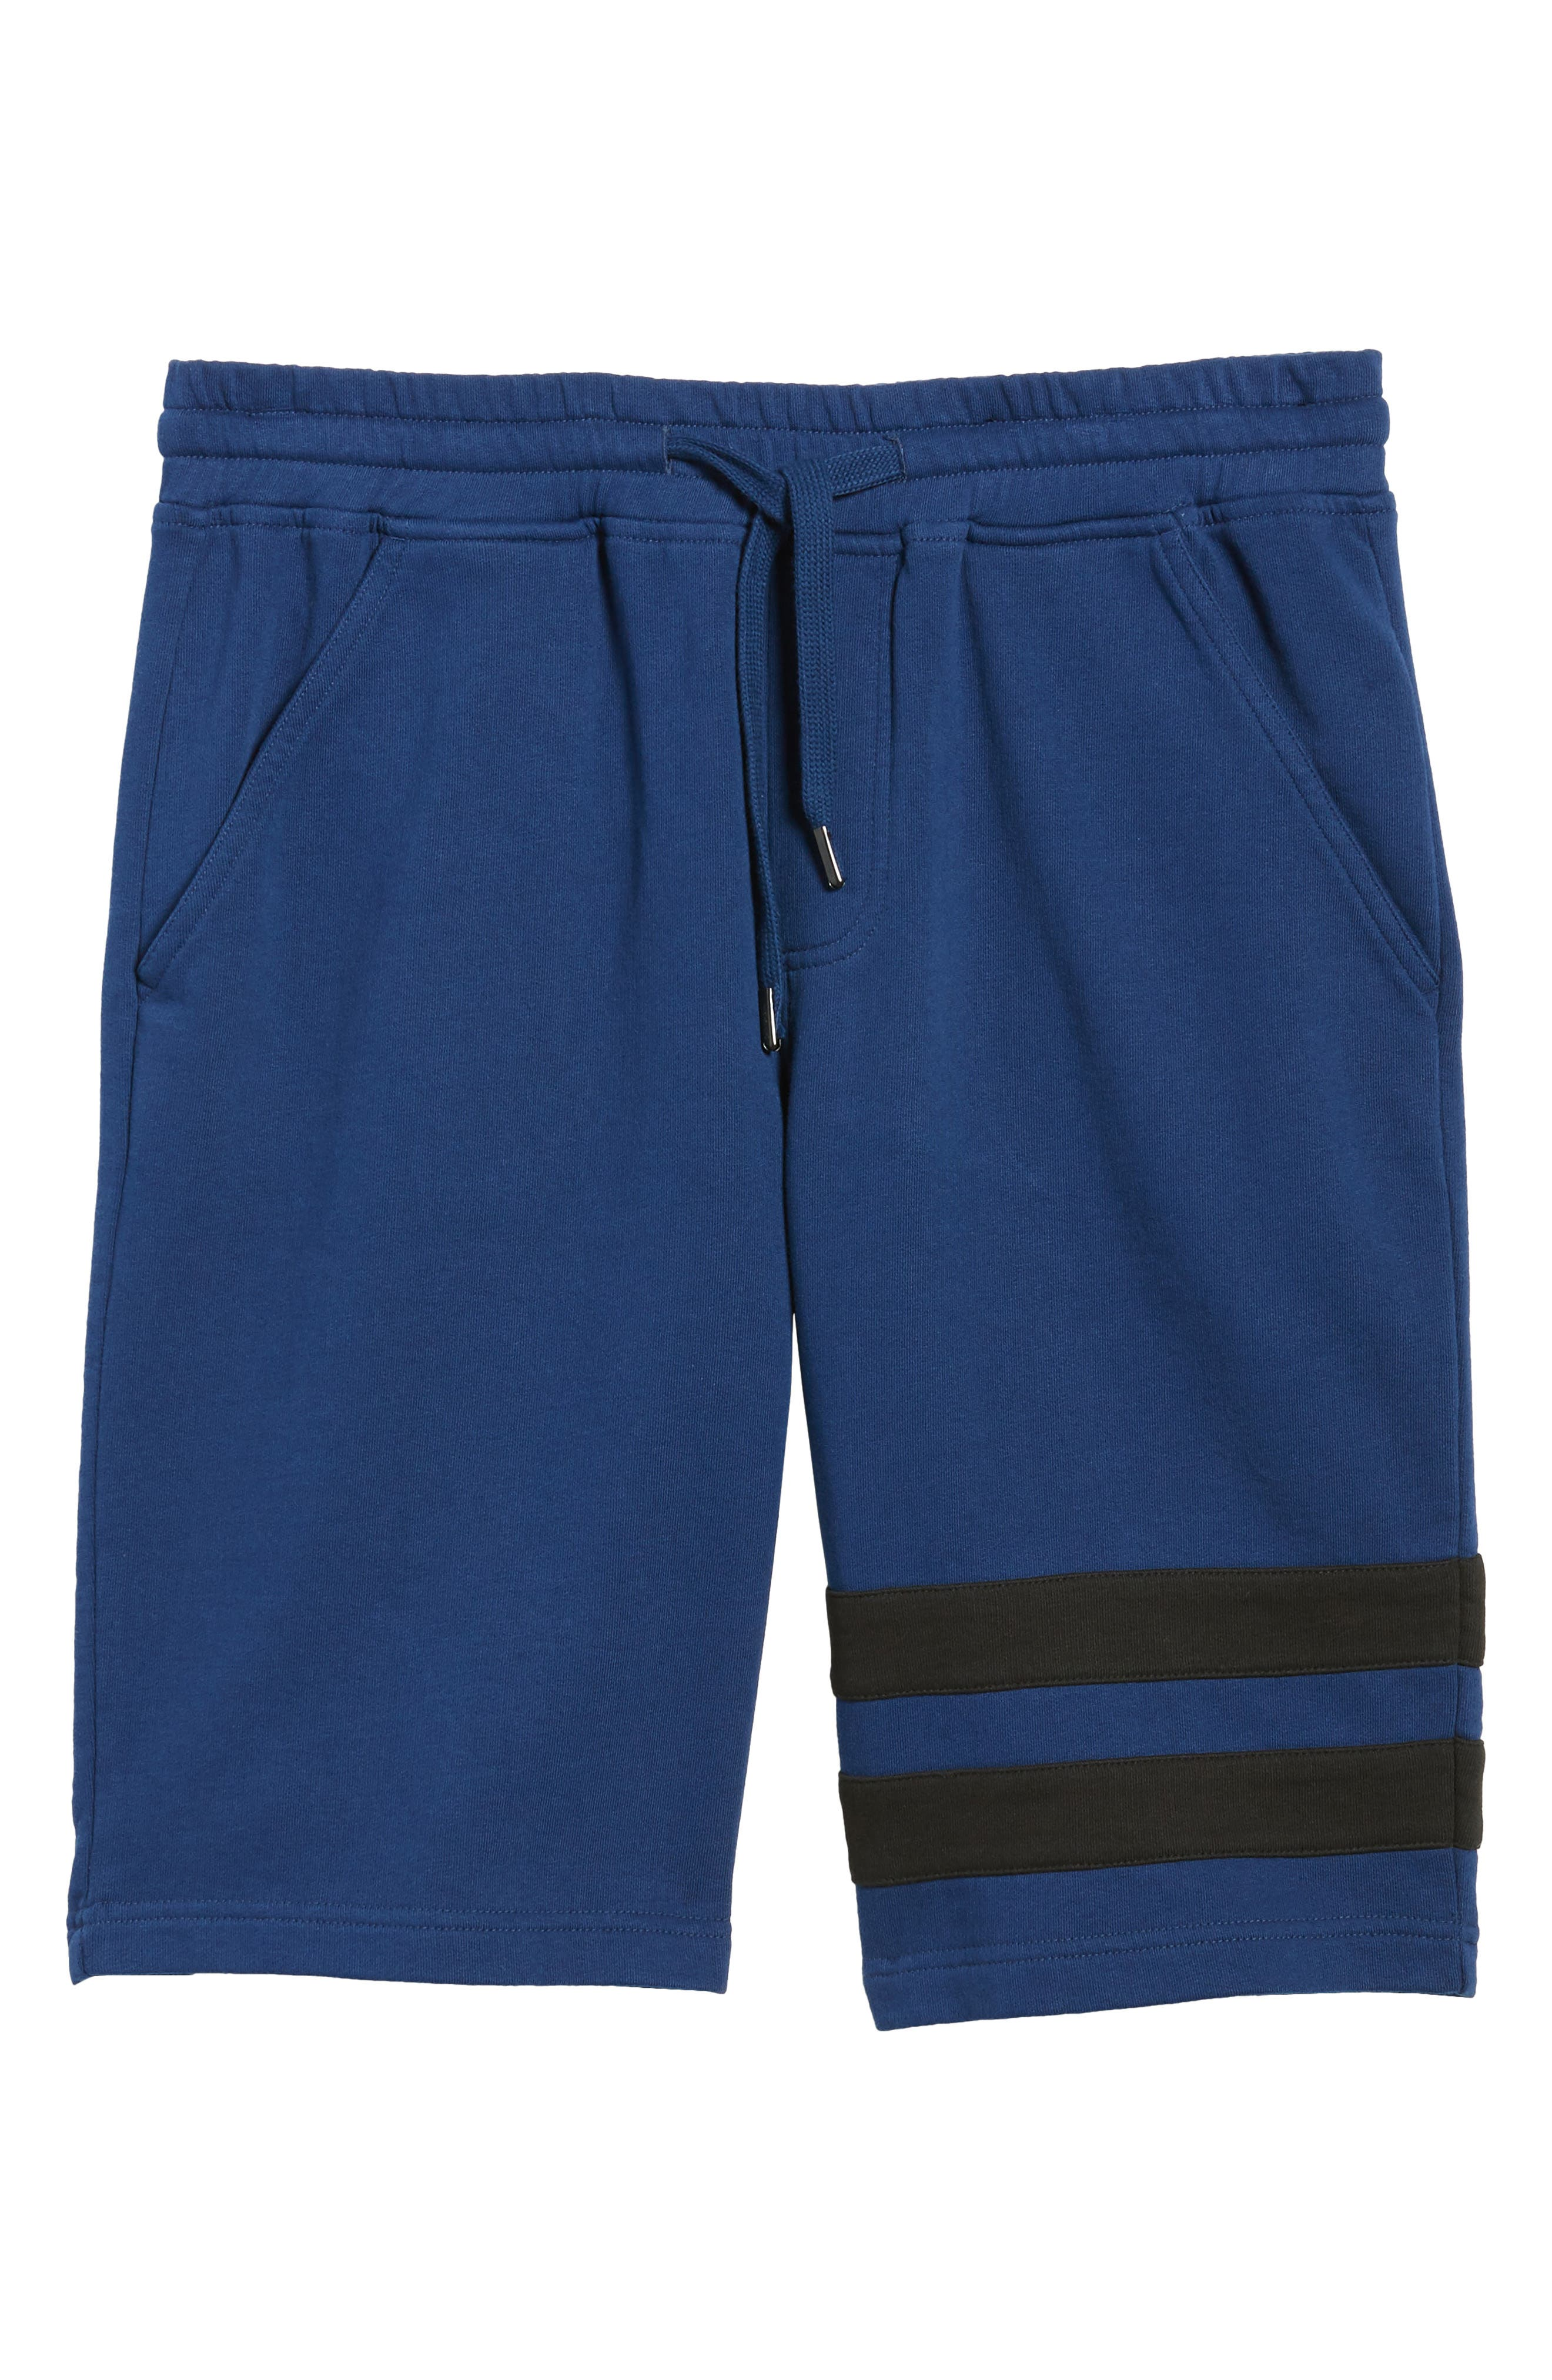 Stripe Athletic Shorts,                             Alternate thumbnail 6, color,                             Night Rider